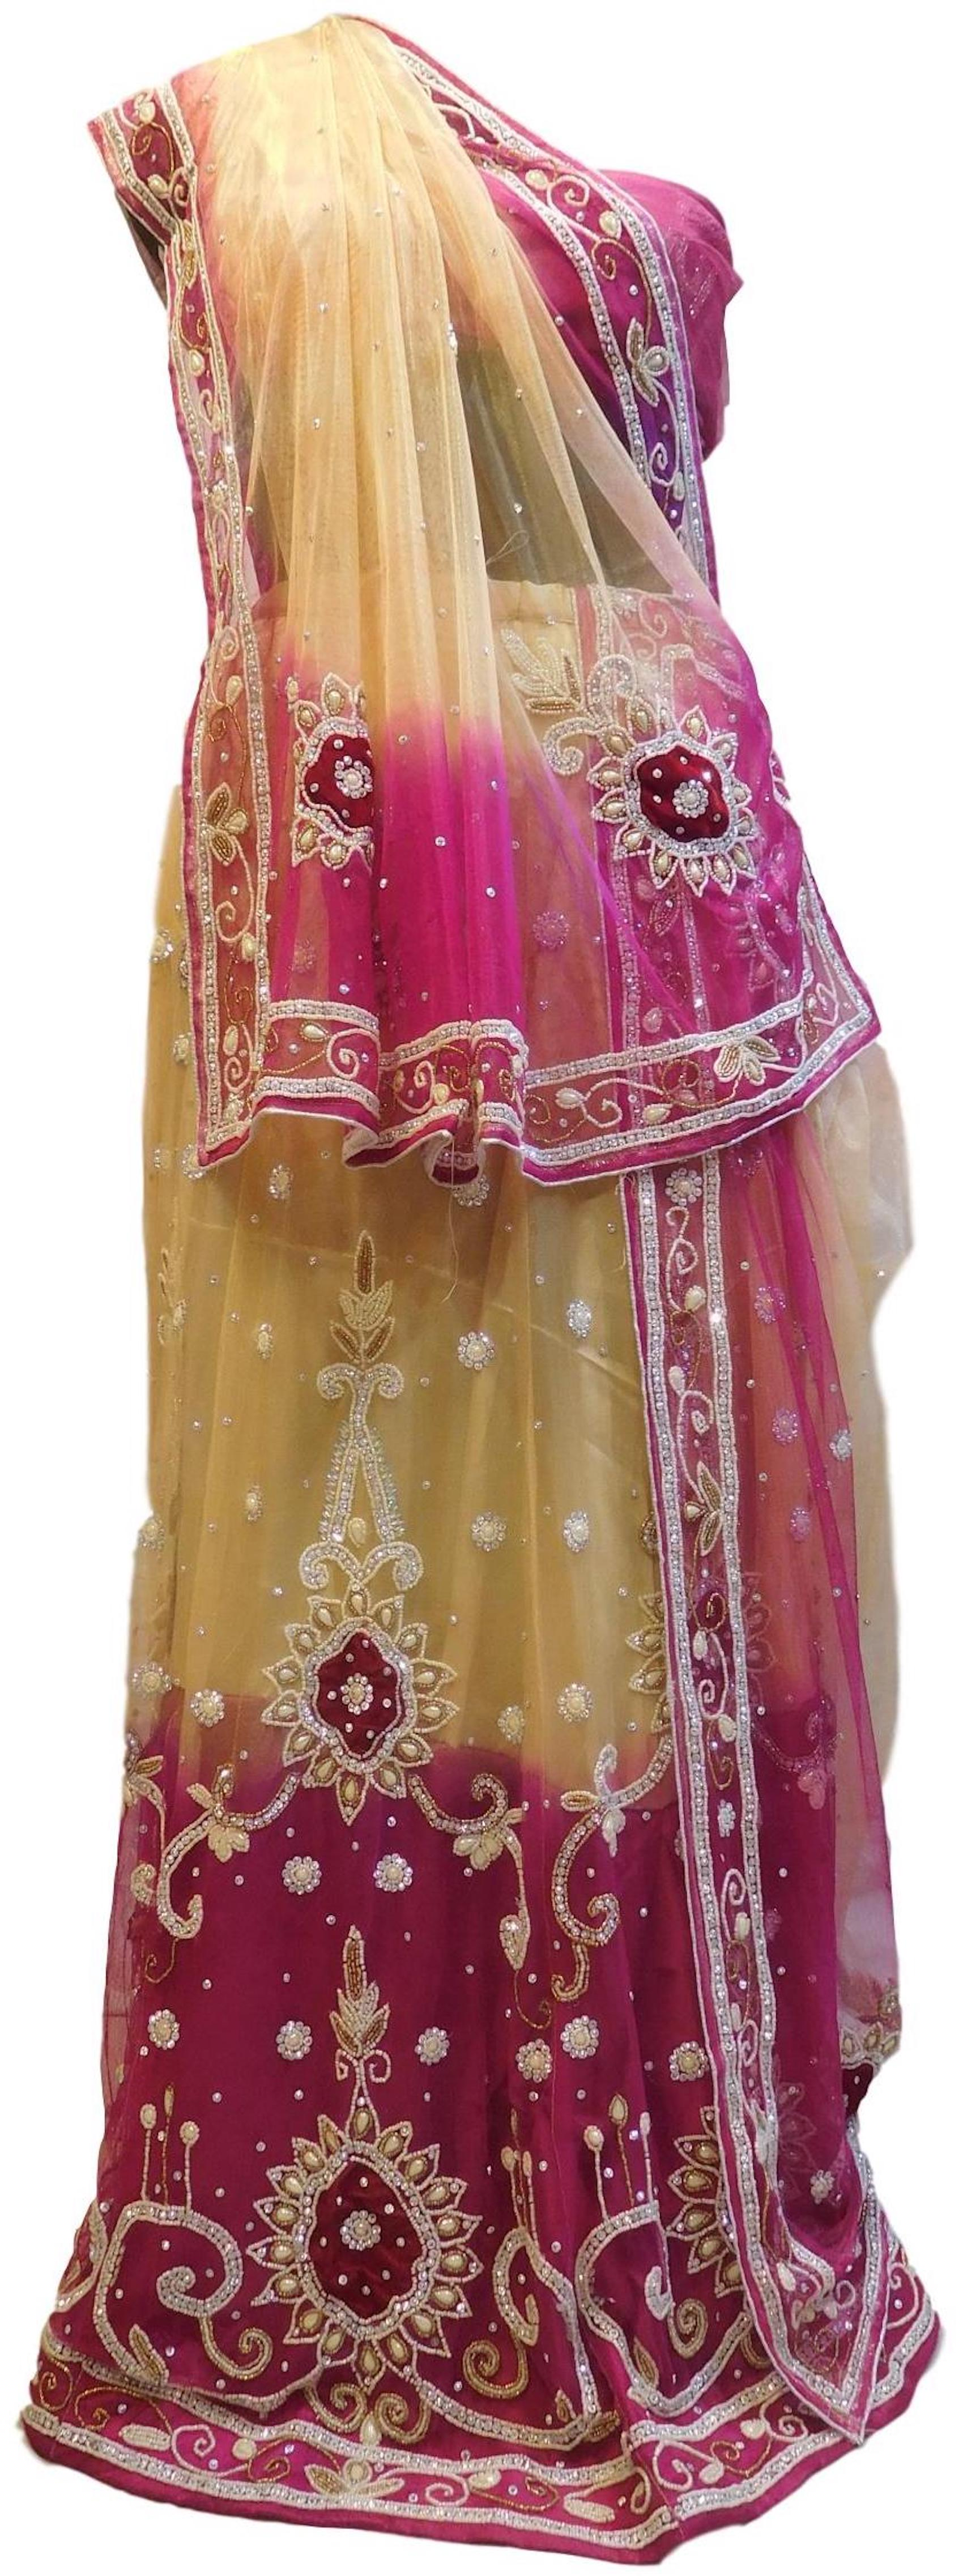 Cream & Pink Designer Wedding Partywear Net Bullion Beads Stone Pearl Hand Embroidery Work Bridal Lahenga Choli Dupatta Semistitched LAE171